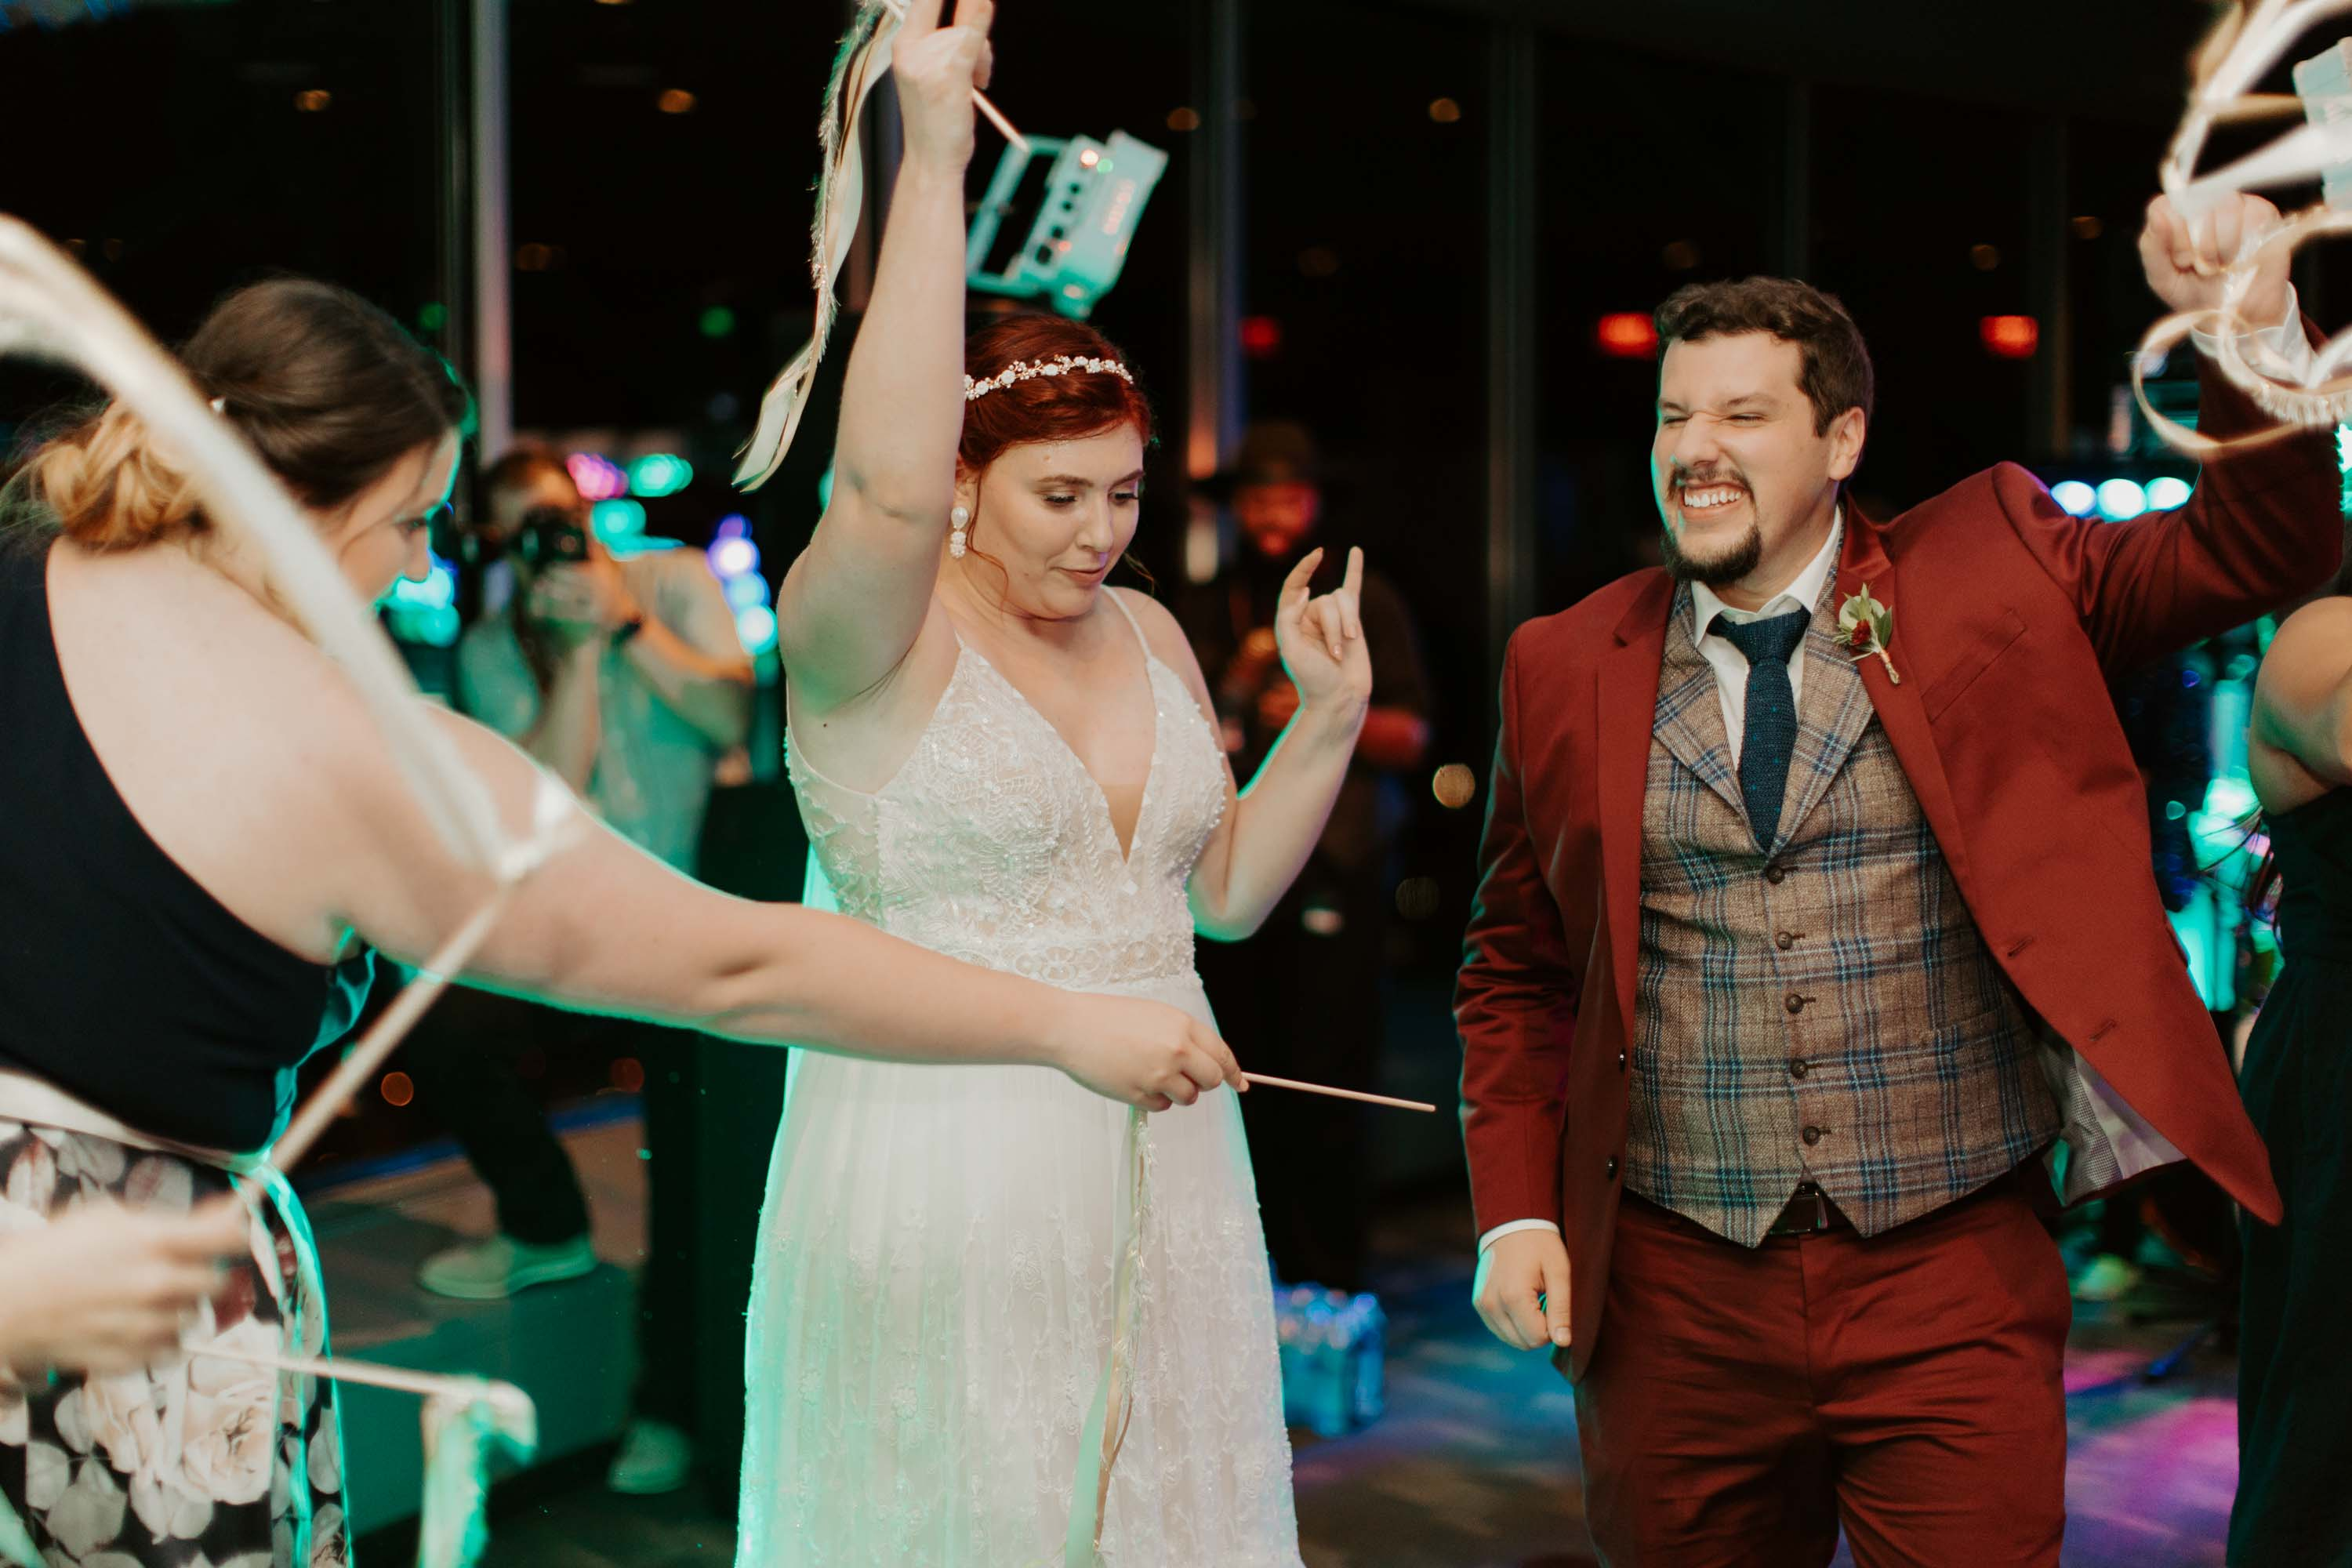 Bride and groom dancing at wedding ceremony in reunion tower